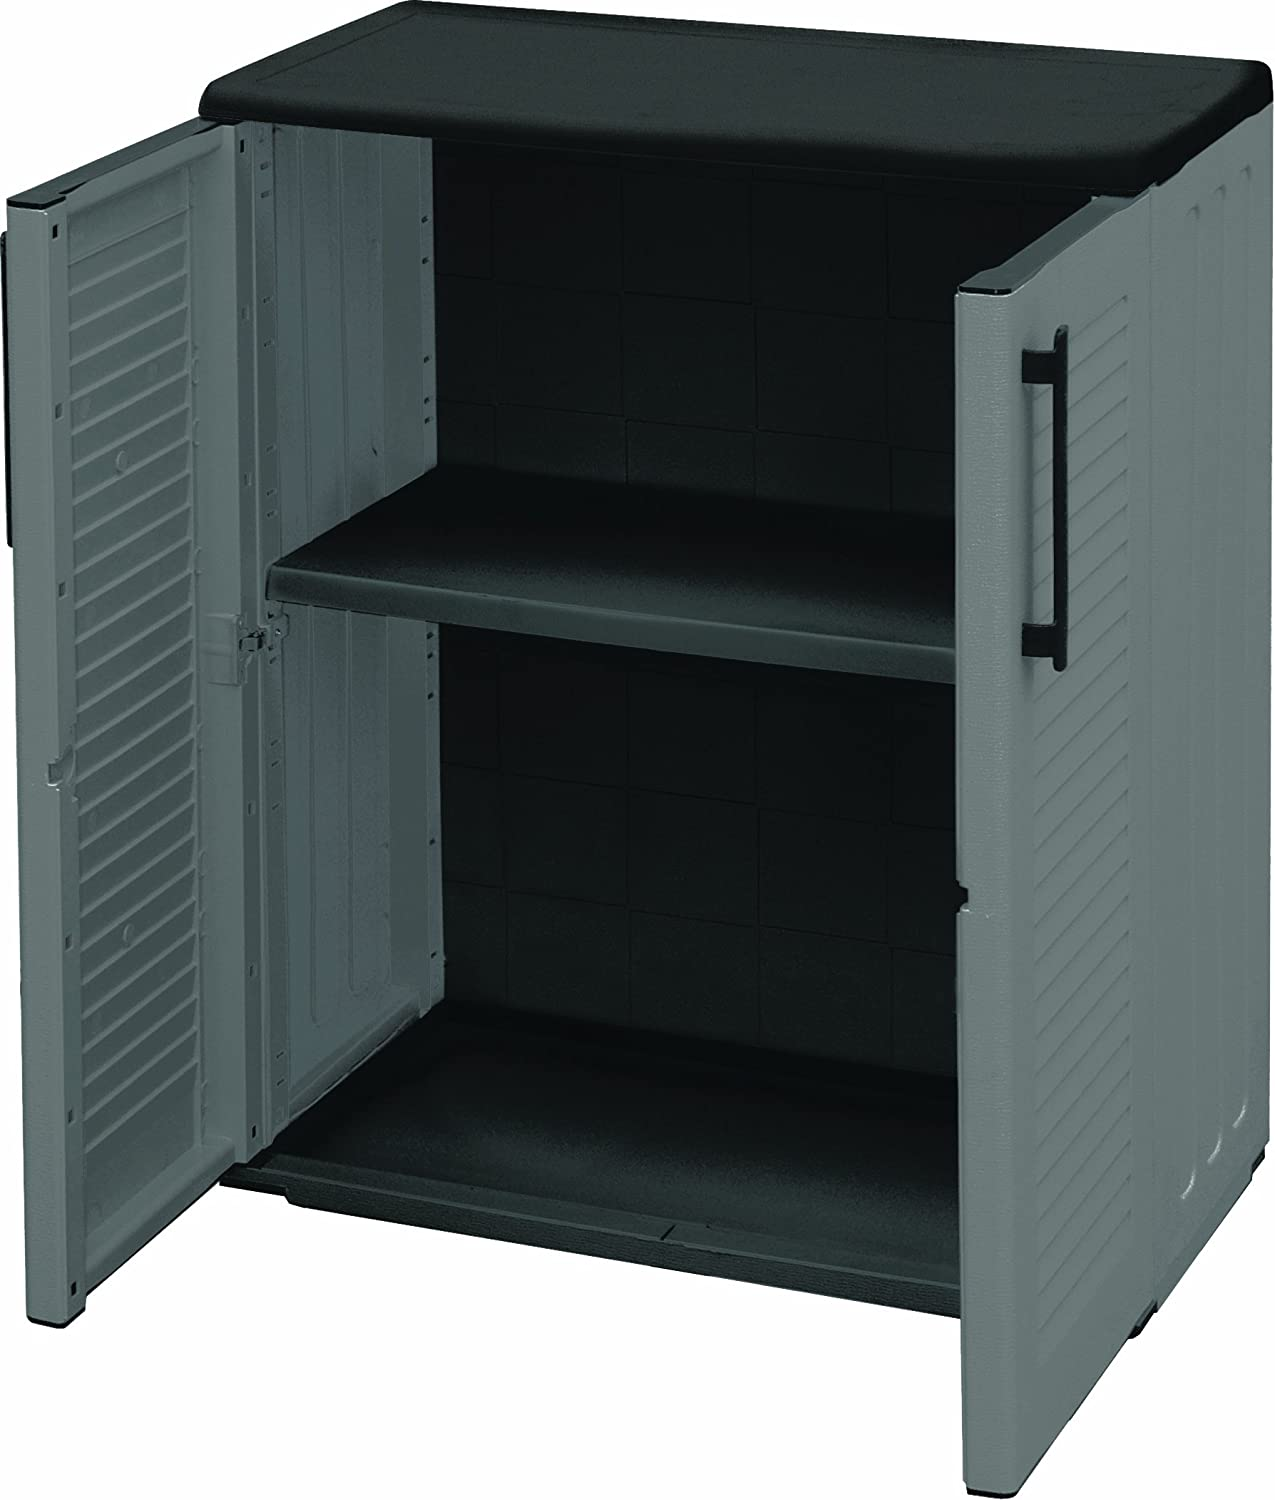 Art Plast E71 – / B Plastic Cabinet, Low, Economic, Grey, Colour: Grey (Low)